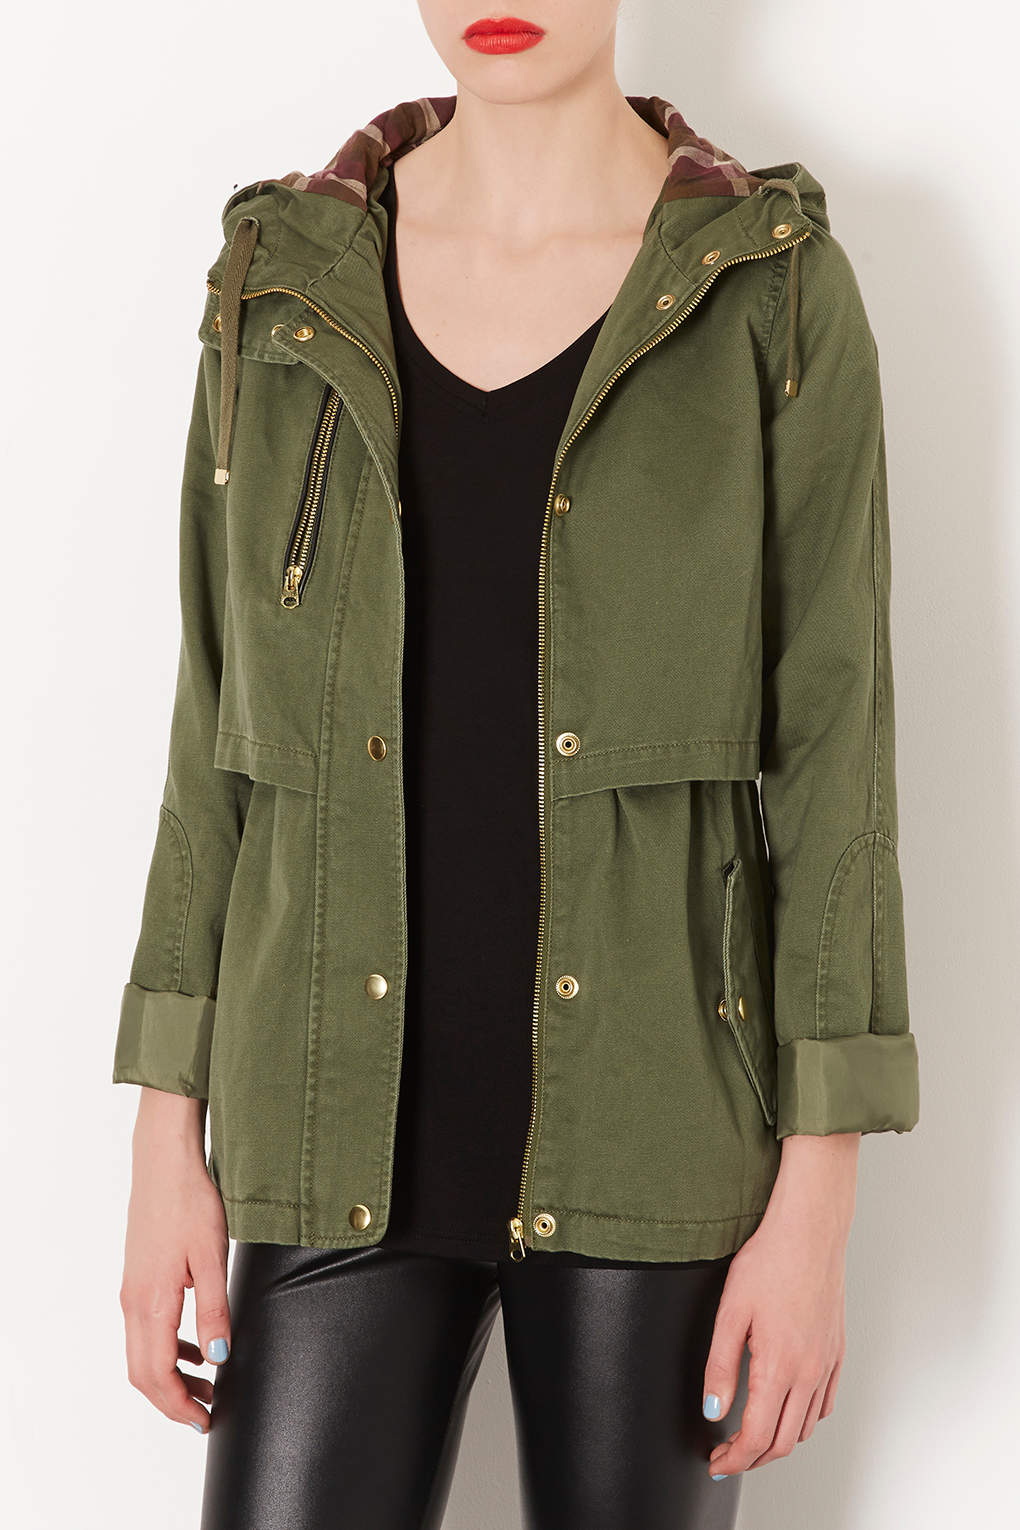 Topshop Hooded Lightweight Jacket in Natural | Lyst